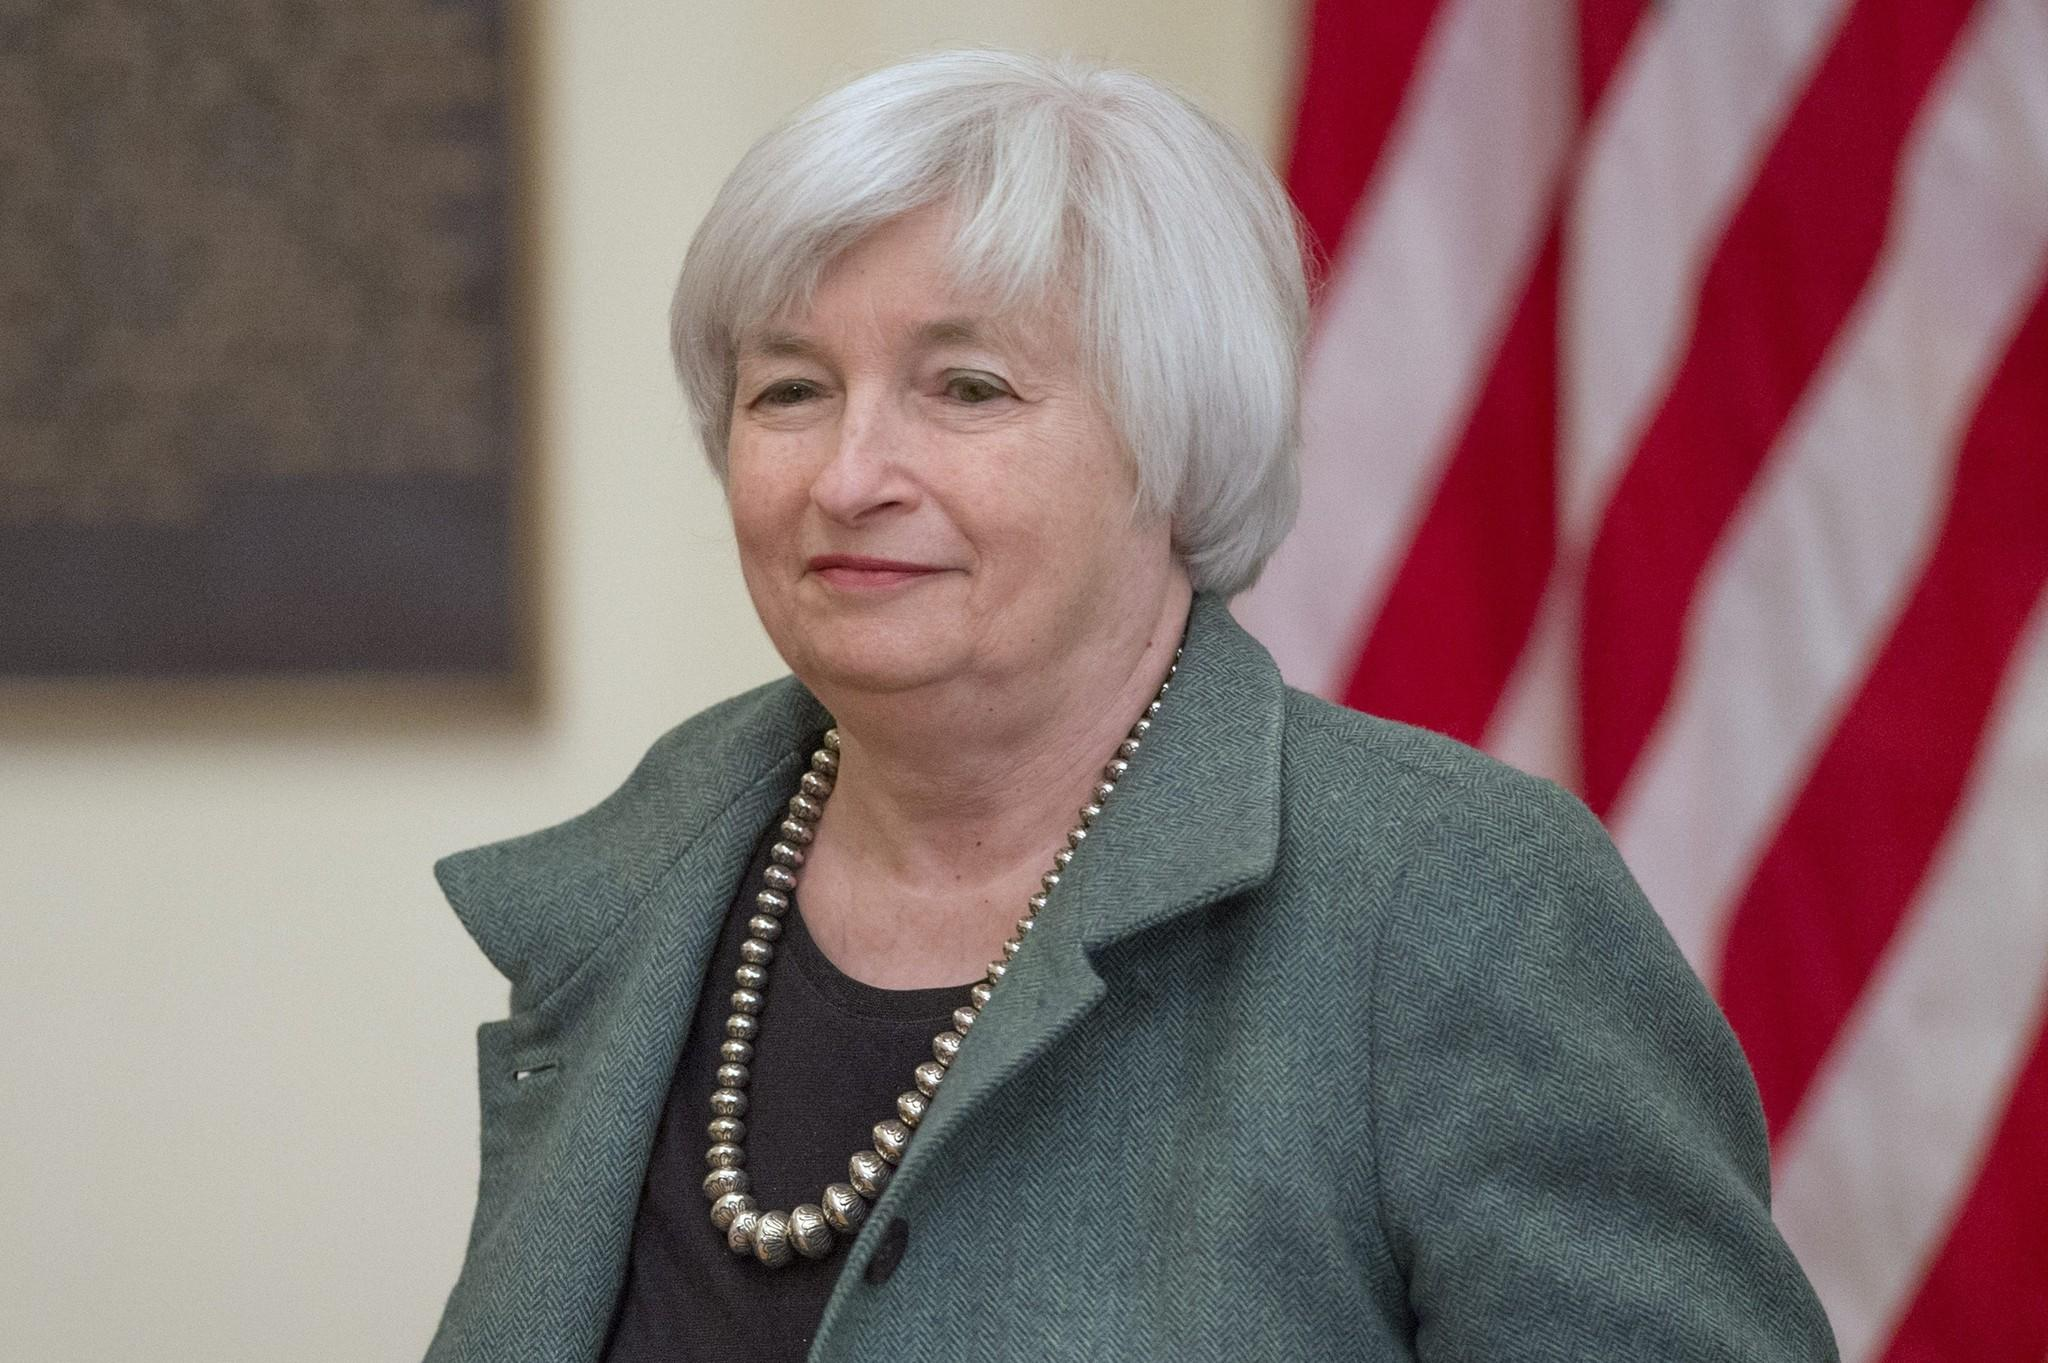 Fed Chairwoman Janet Yellen has sought to reassure investors and others that the Fed remains committed to its easy-money policy, largely because of the weak labor market.